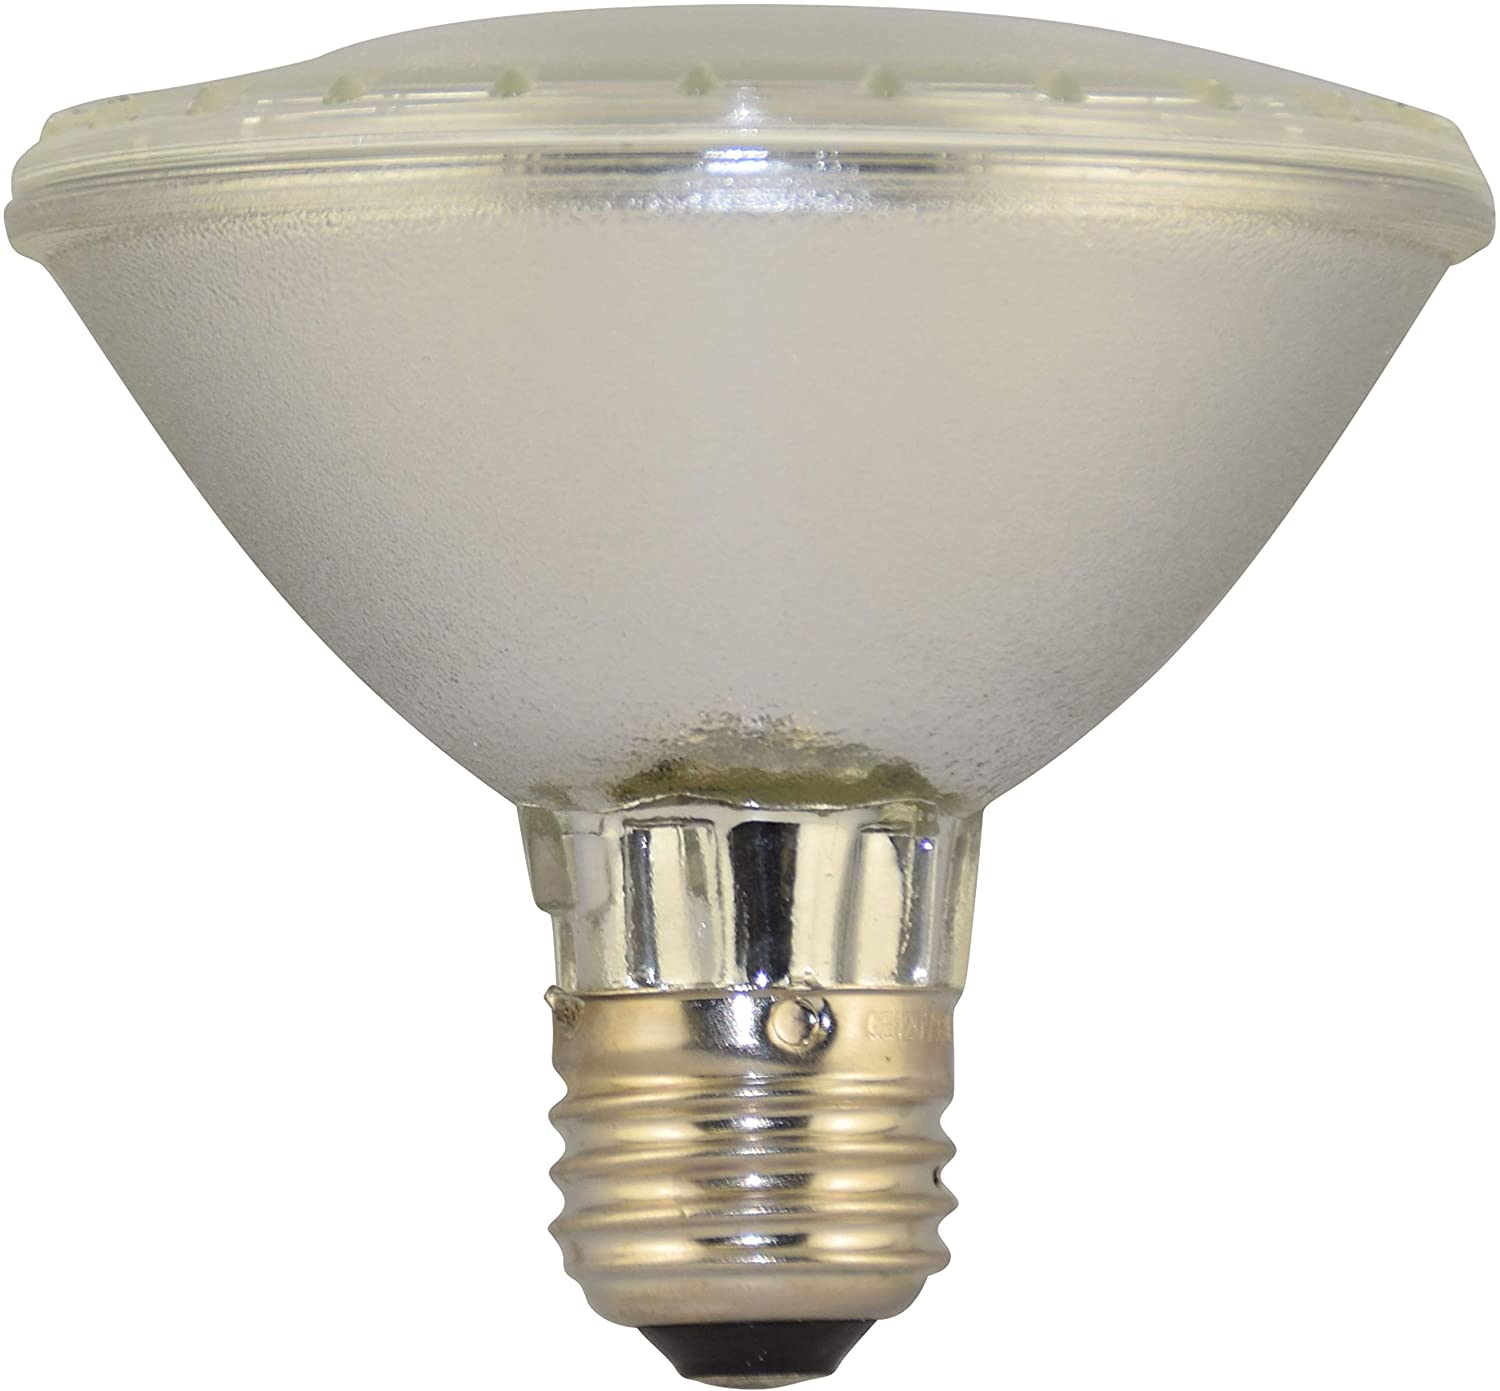 Replacement for Batteries and Light Bulbs 50par30/cap/ir/fl40-130v Light Bulb by Technical Precision